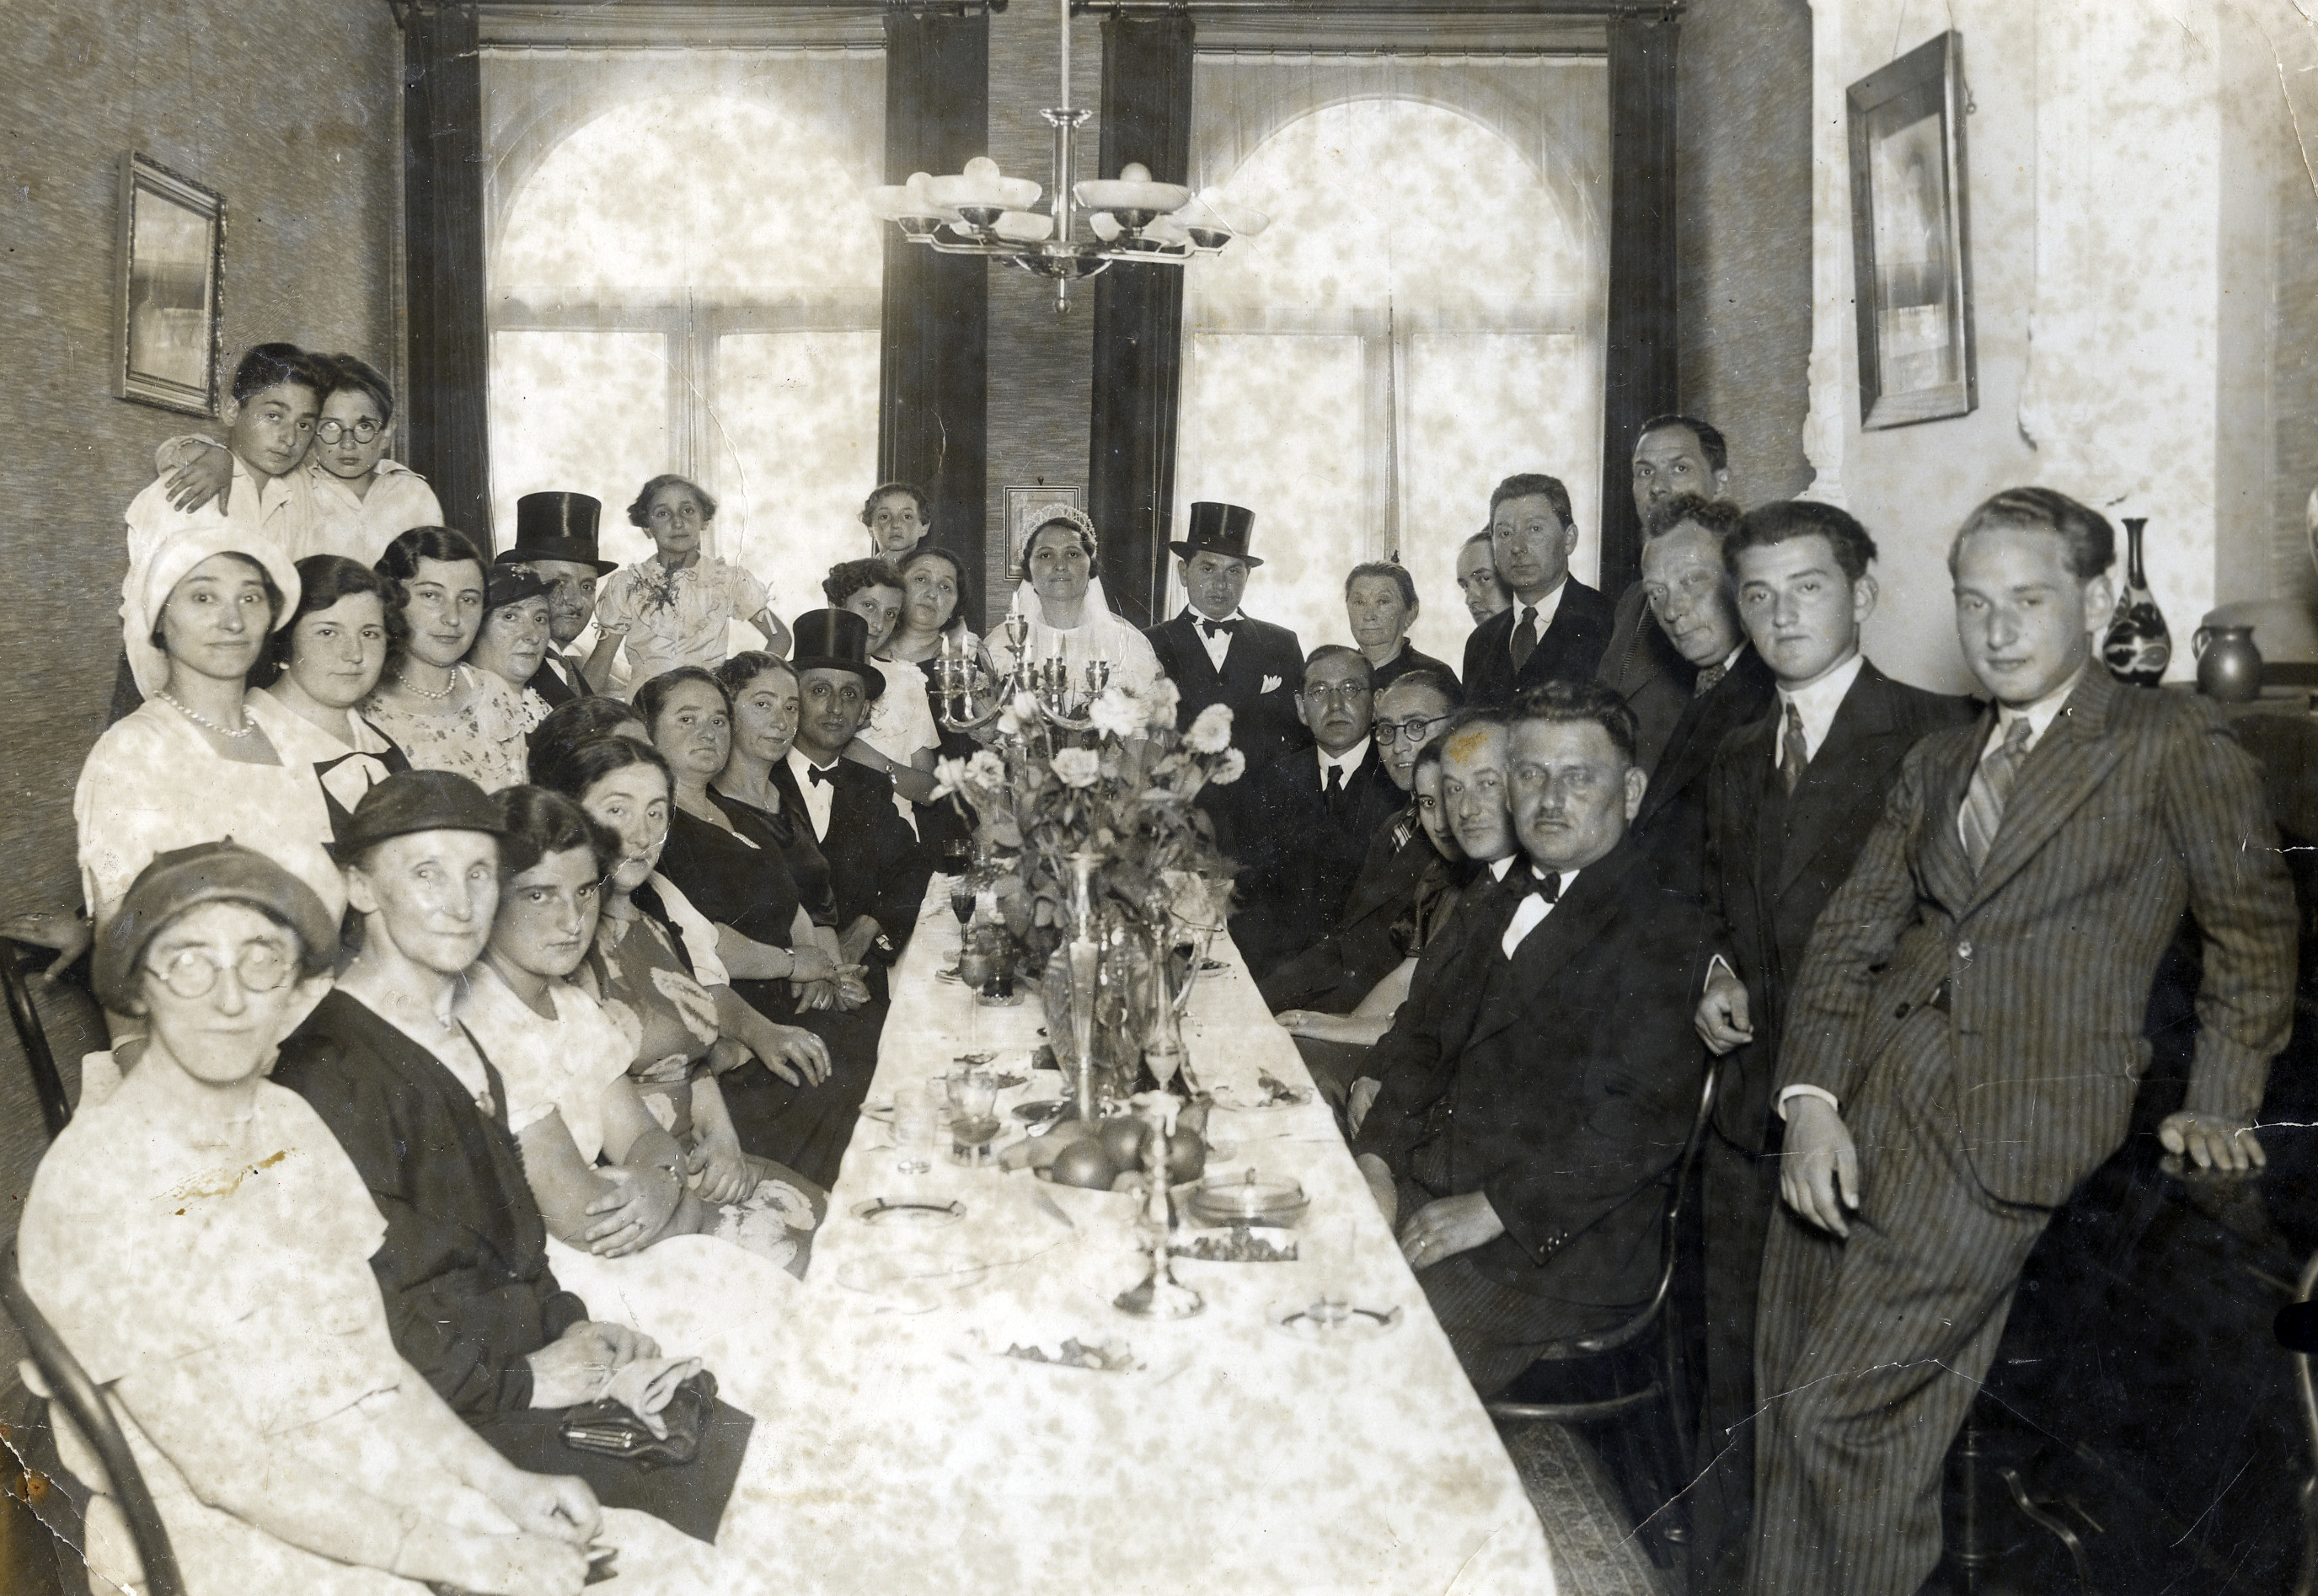 A Dutch Jewish family celebrates a wedding.  Pictured at the end of the table are the bride and groom, Shela (Shifra) Thaler Erlich and Mr. Erlich.  In the left back, wearing a top hat, is Isaac Stopper.